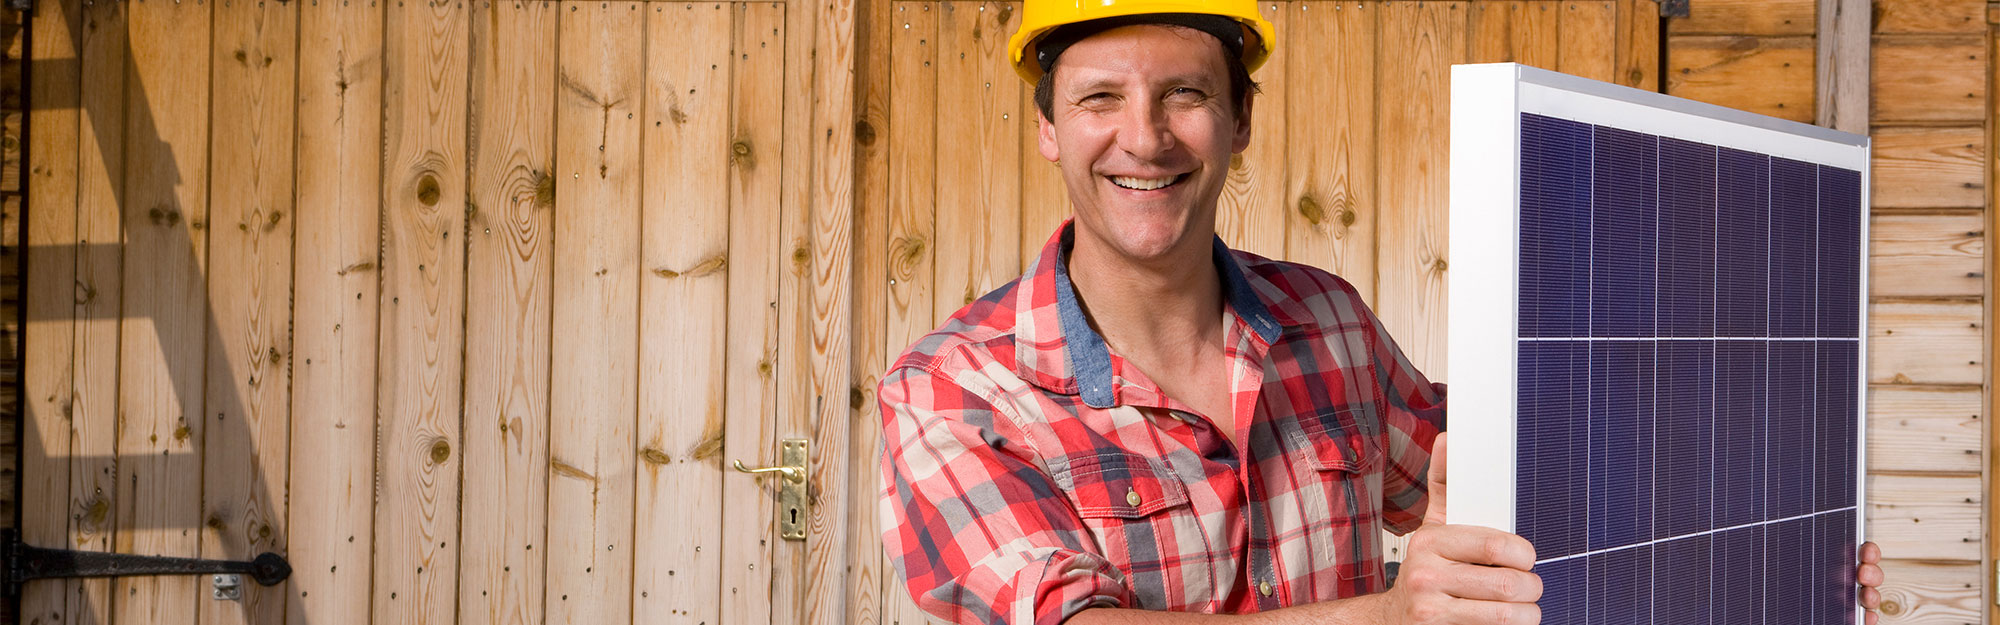 Smiling man holding solar panel in front of cabin.